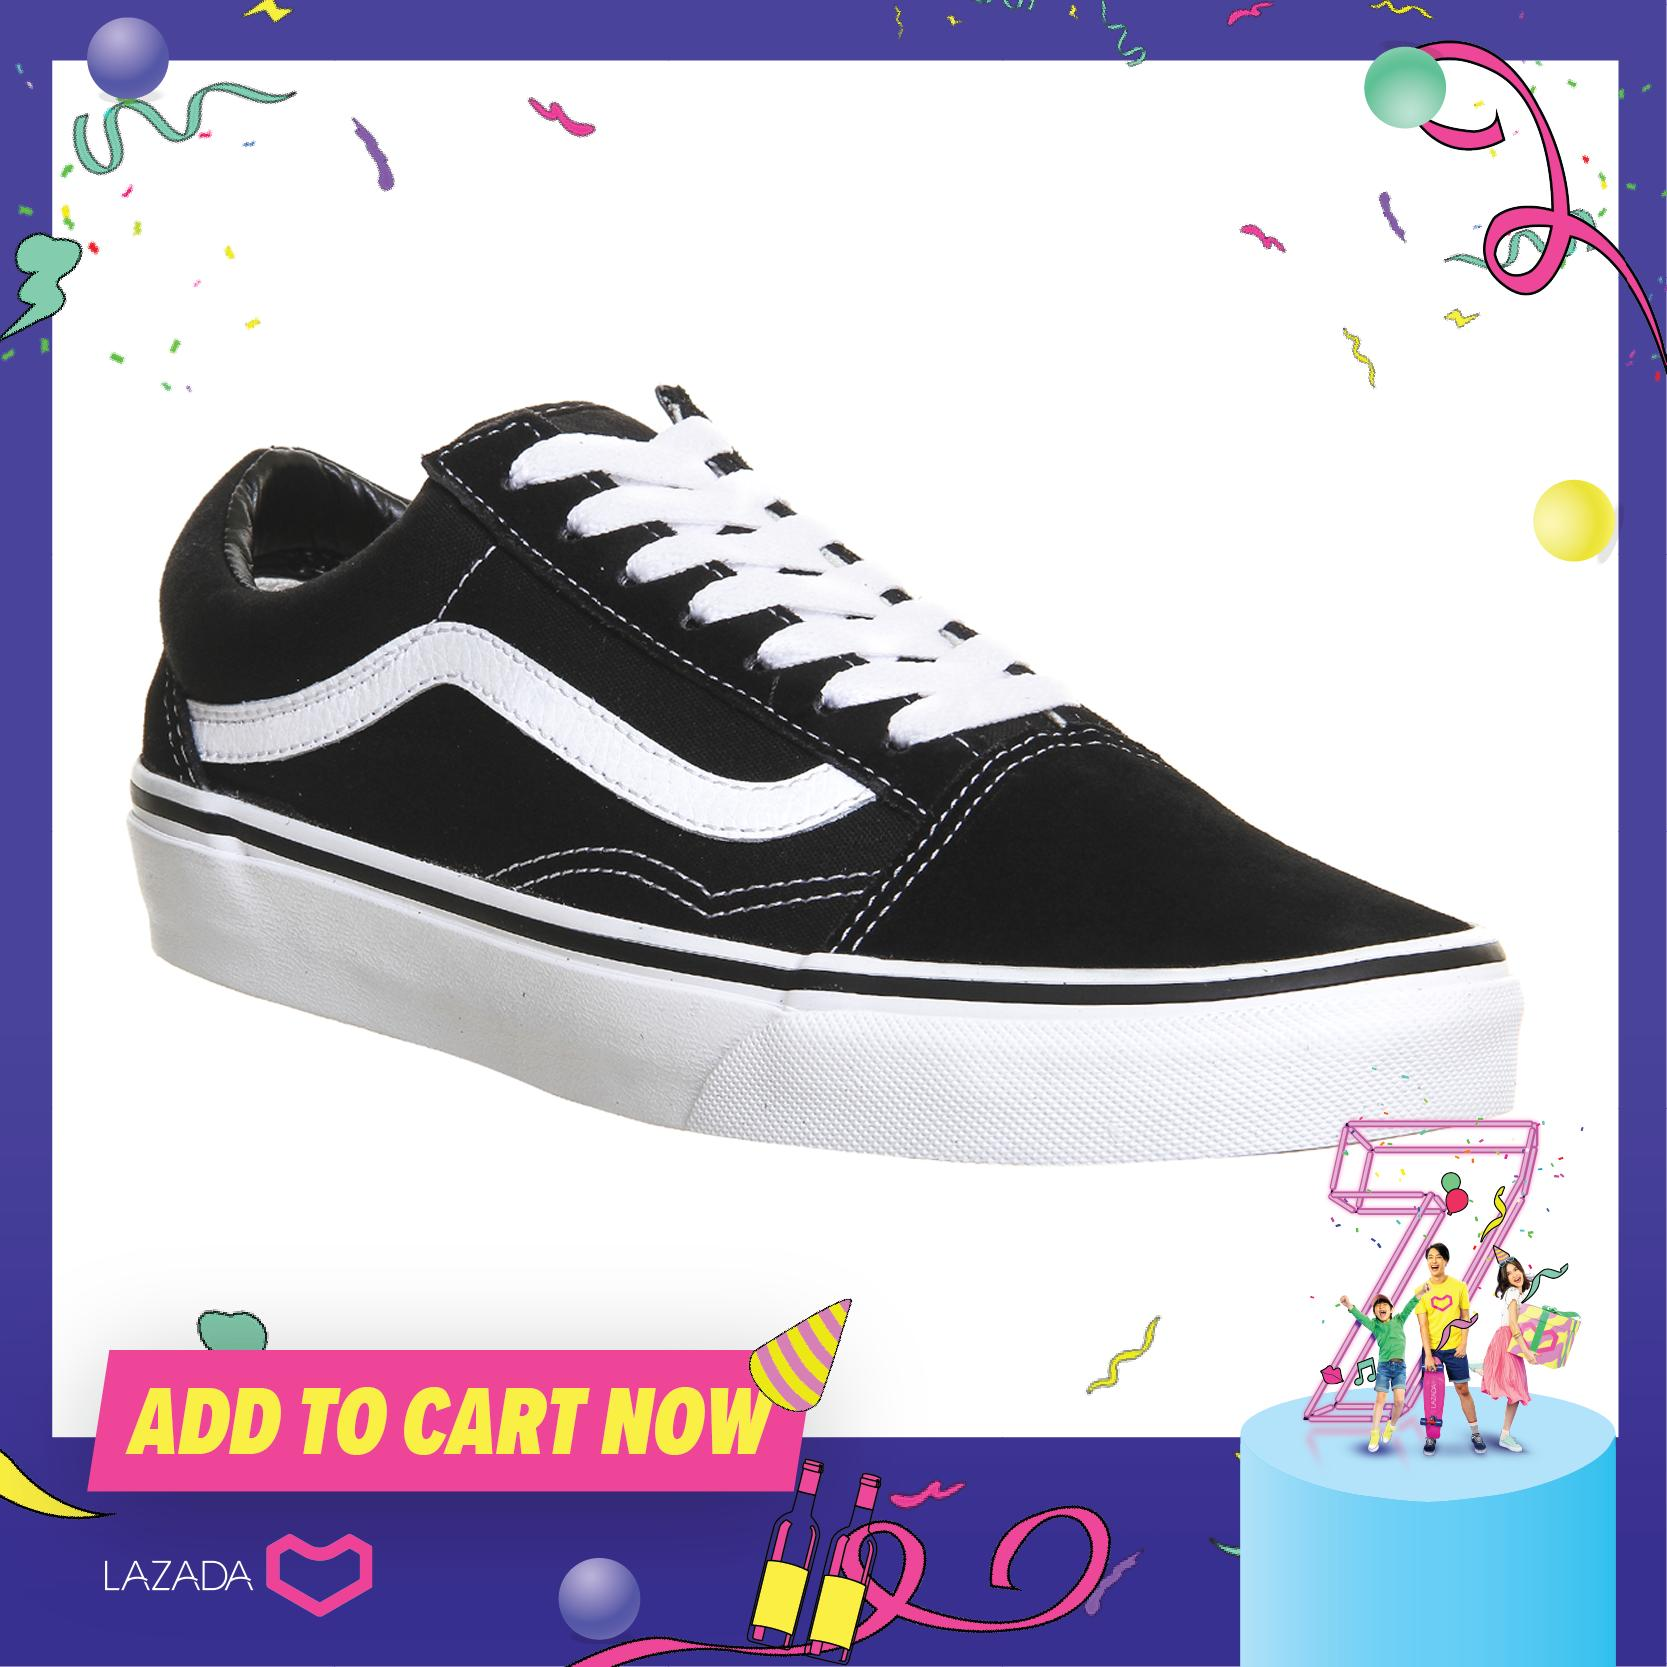 Lazada Vans Official Store Outlet Store, UP TO 66% OFF